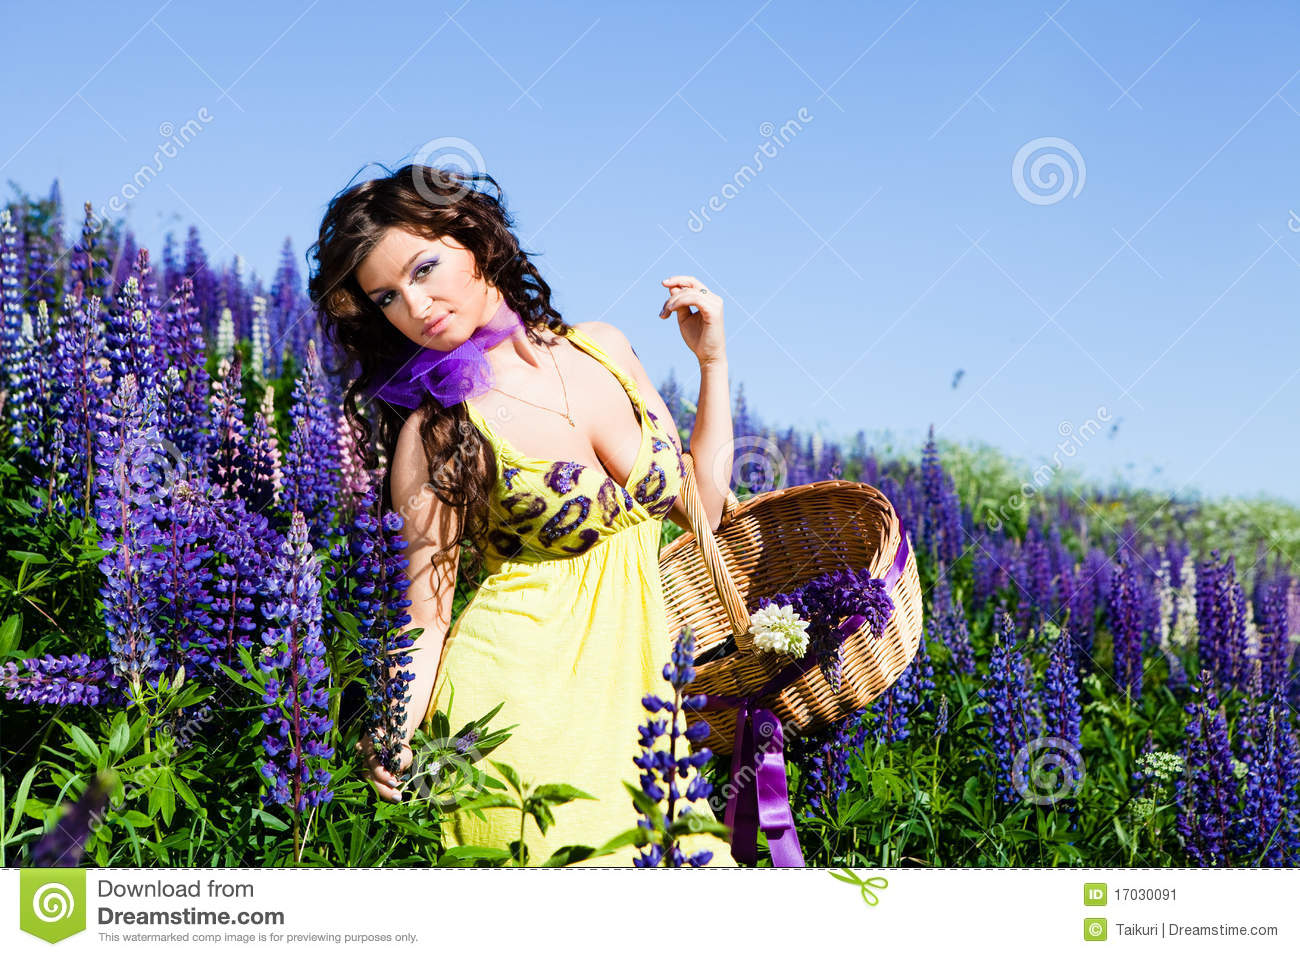 Woman In Plant Of Violet Wild Lupine Stock Image - Image ...